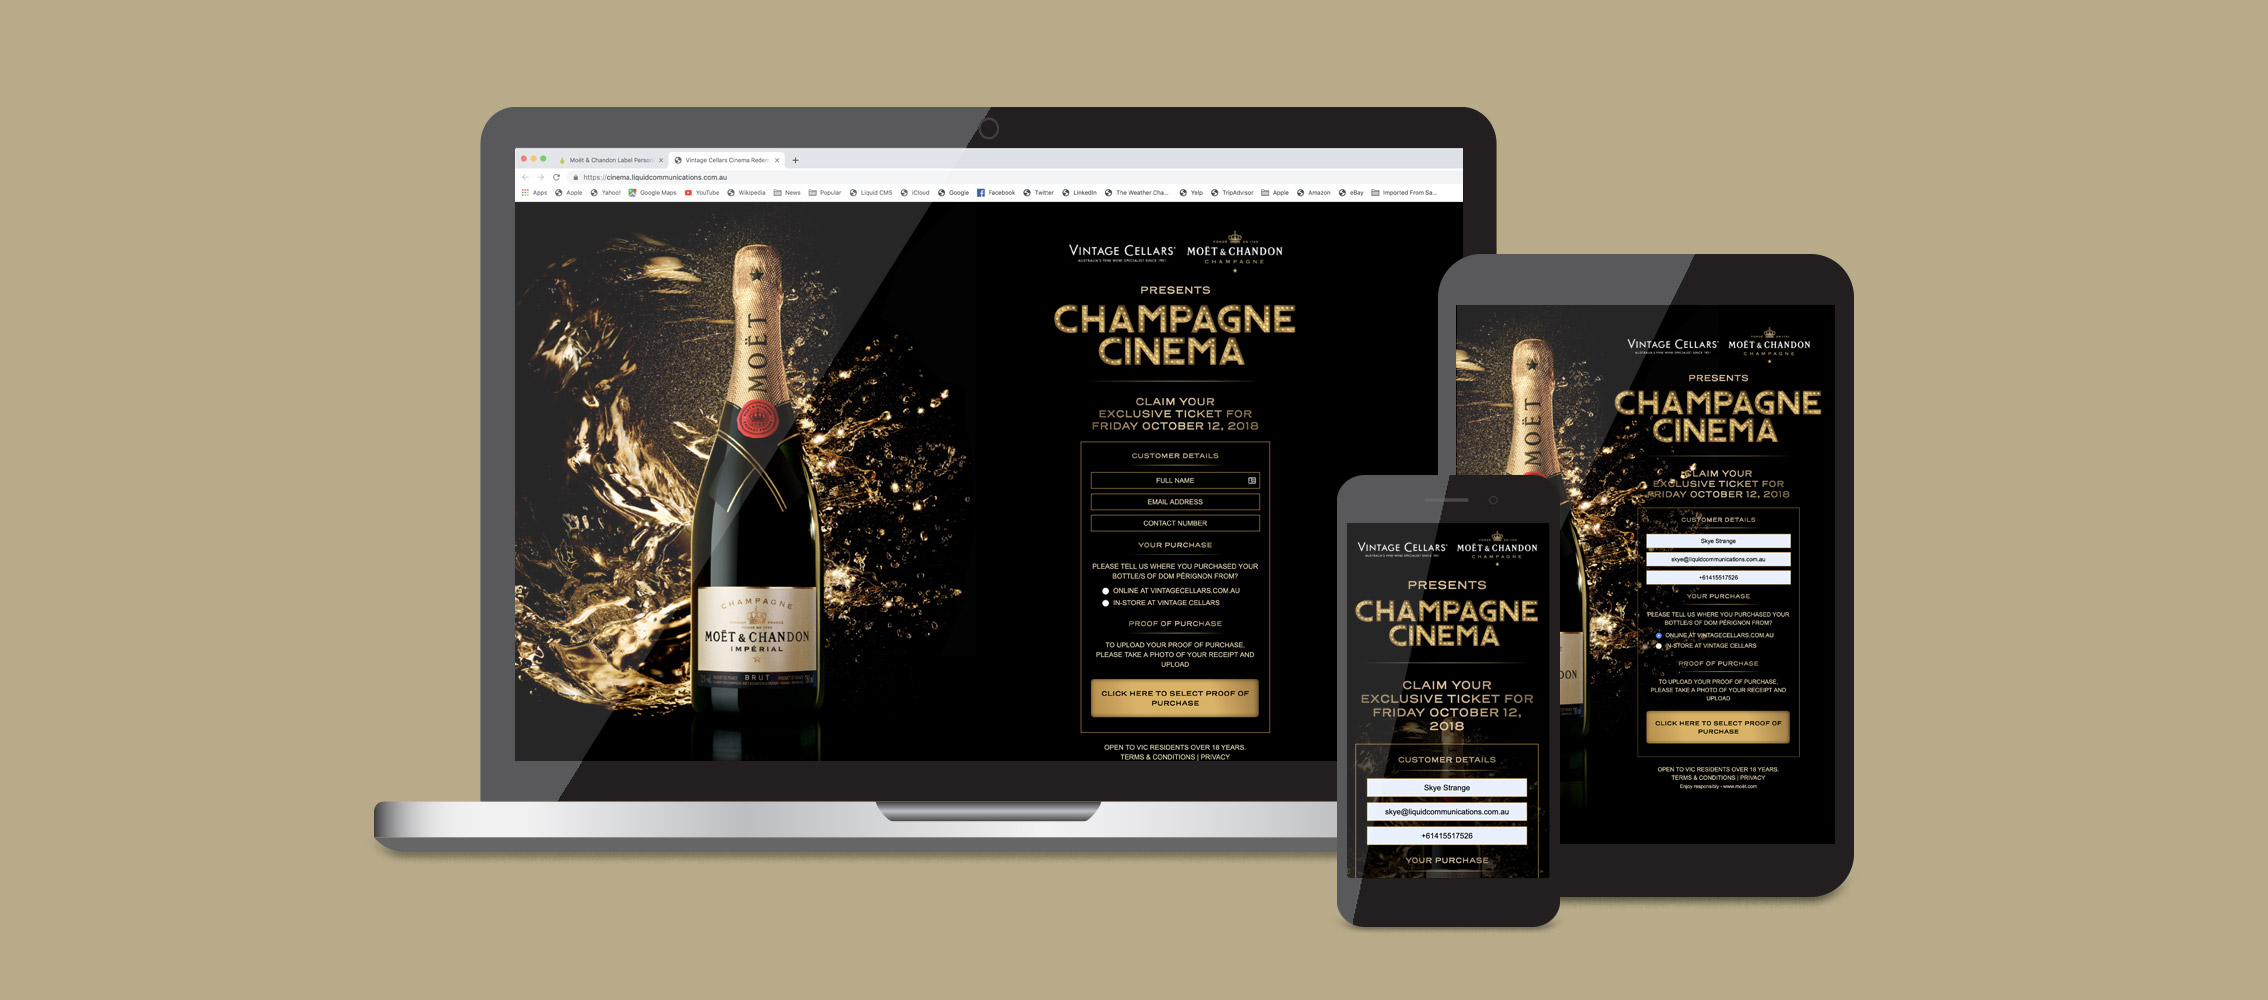 Moët Chandon Champagne Cinema Micro site Design